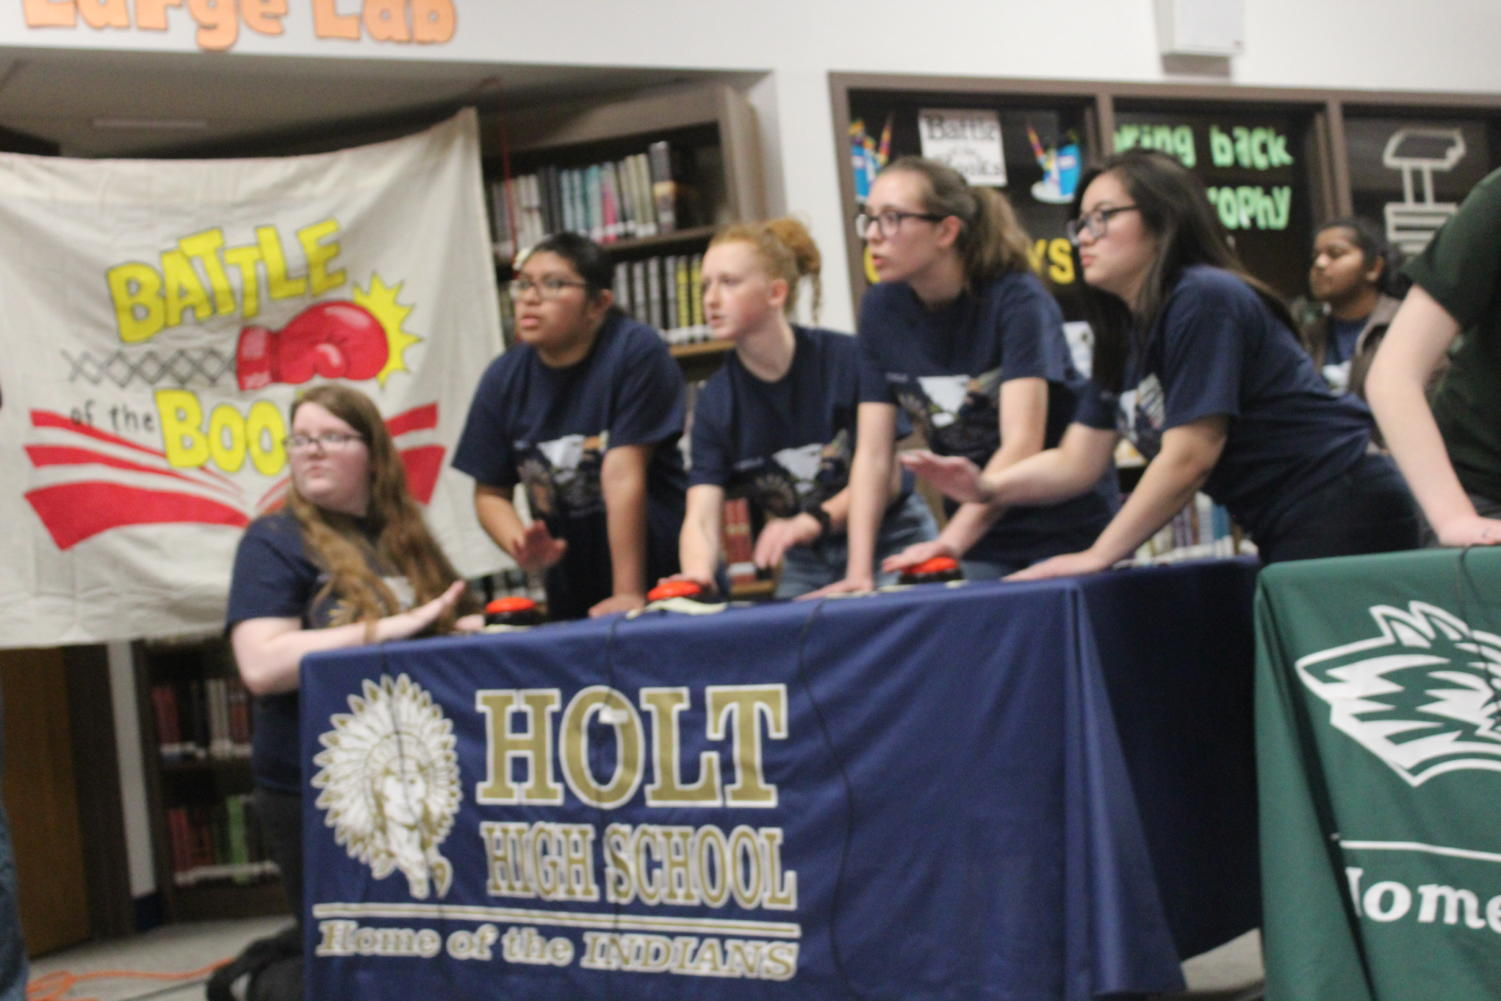 Holts Battle of the Books team was geared up and ready to answer what ever was thrown at them